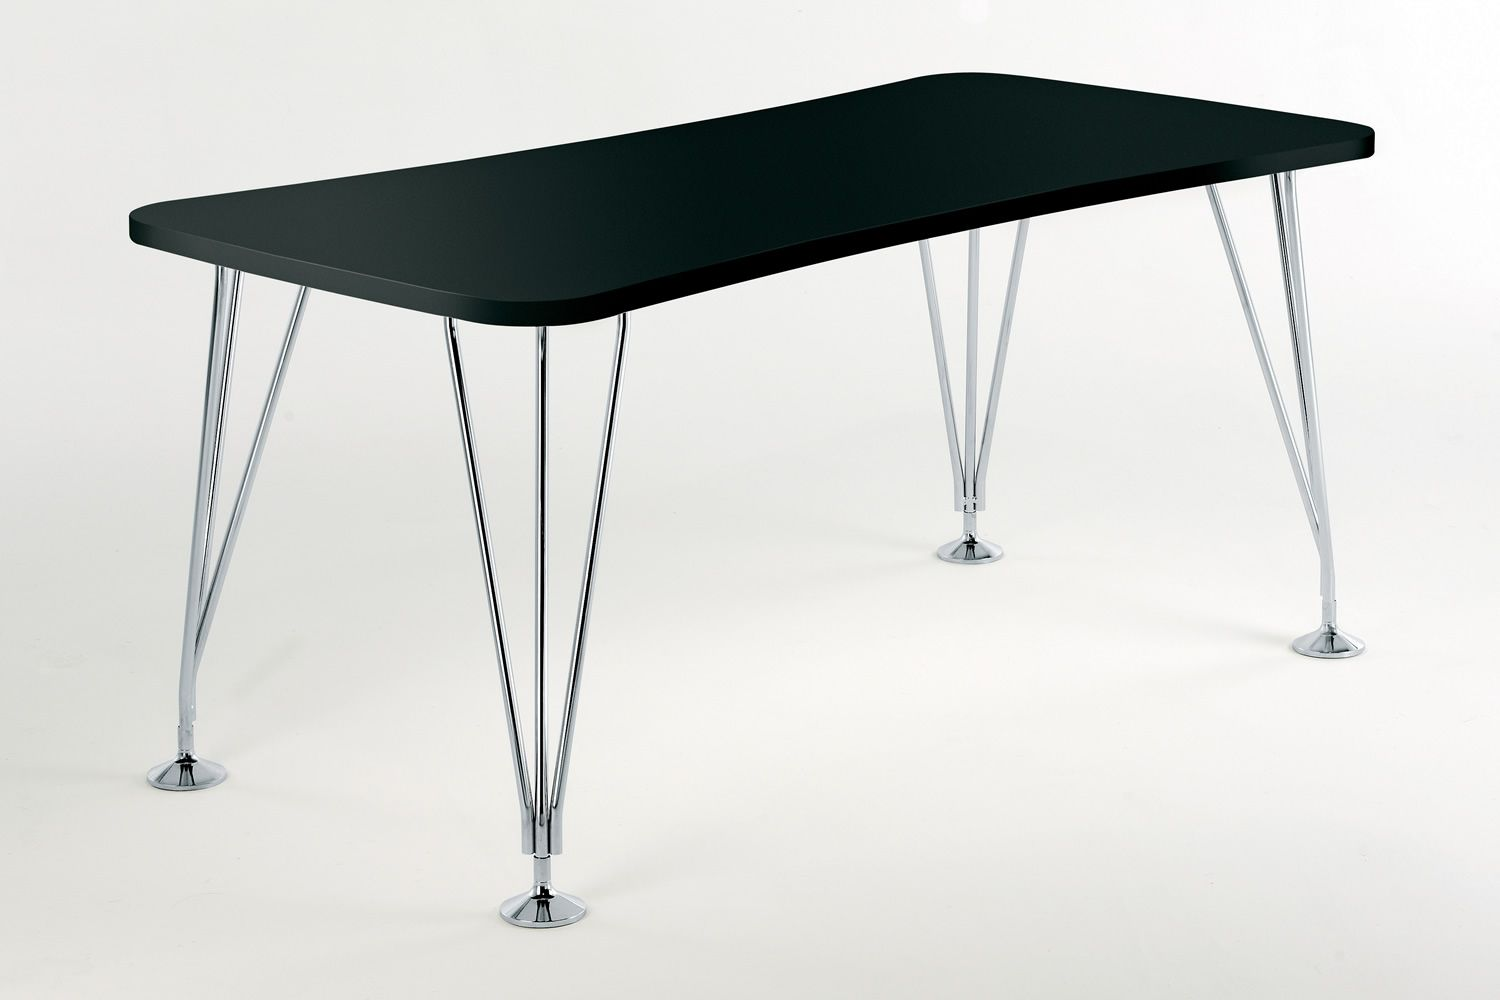 max design kartell table desk in steel and laminated wood with  -  max  design kartell table in black colour